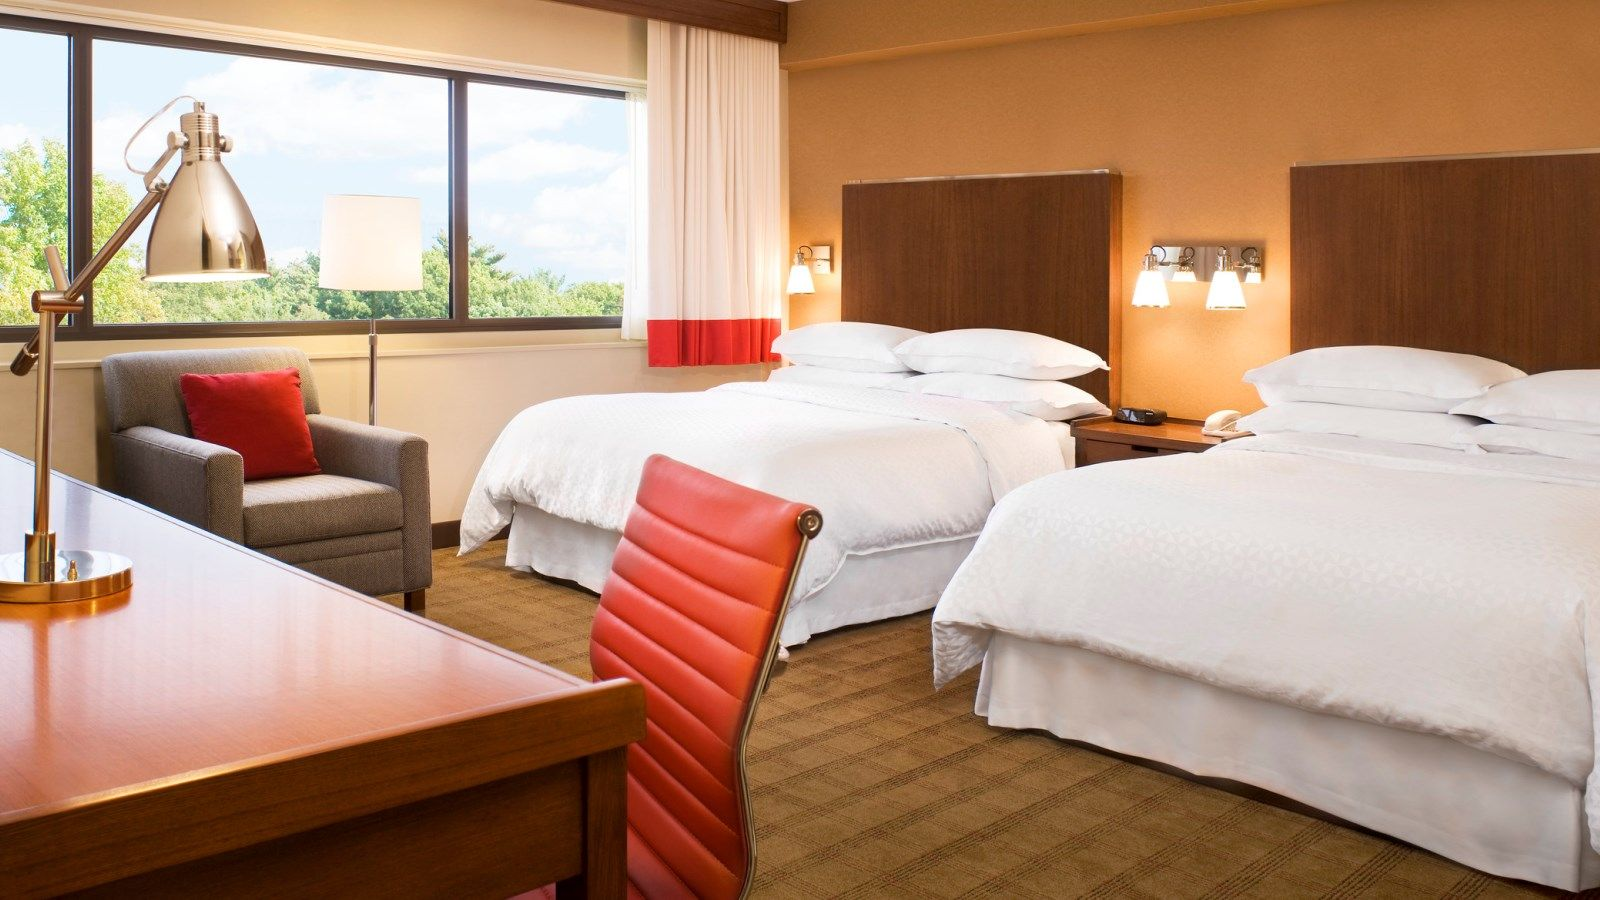 Milwaukee Accommodations - Accessible Room